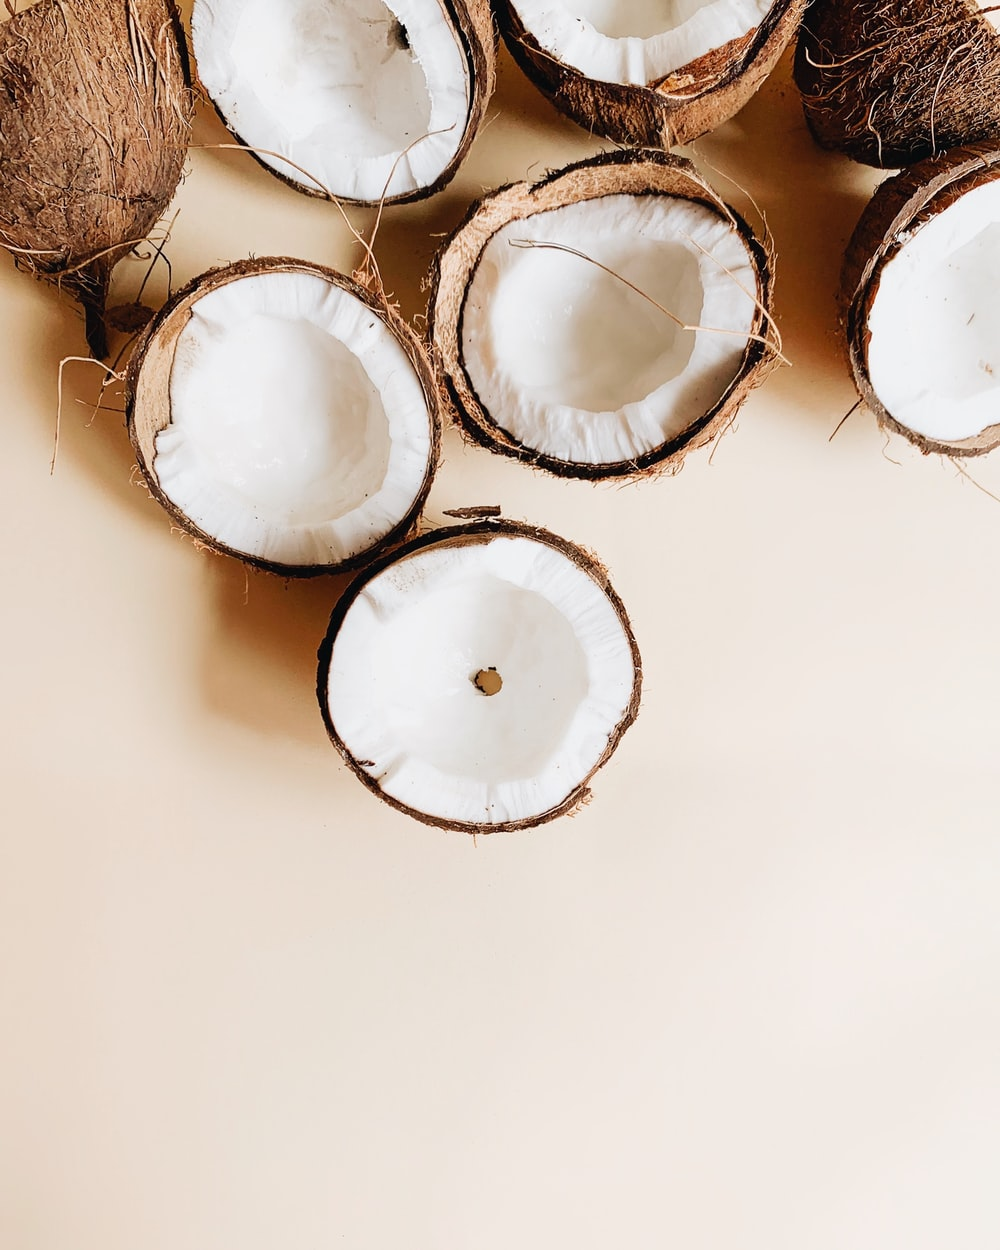 coconuts on white surface